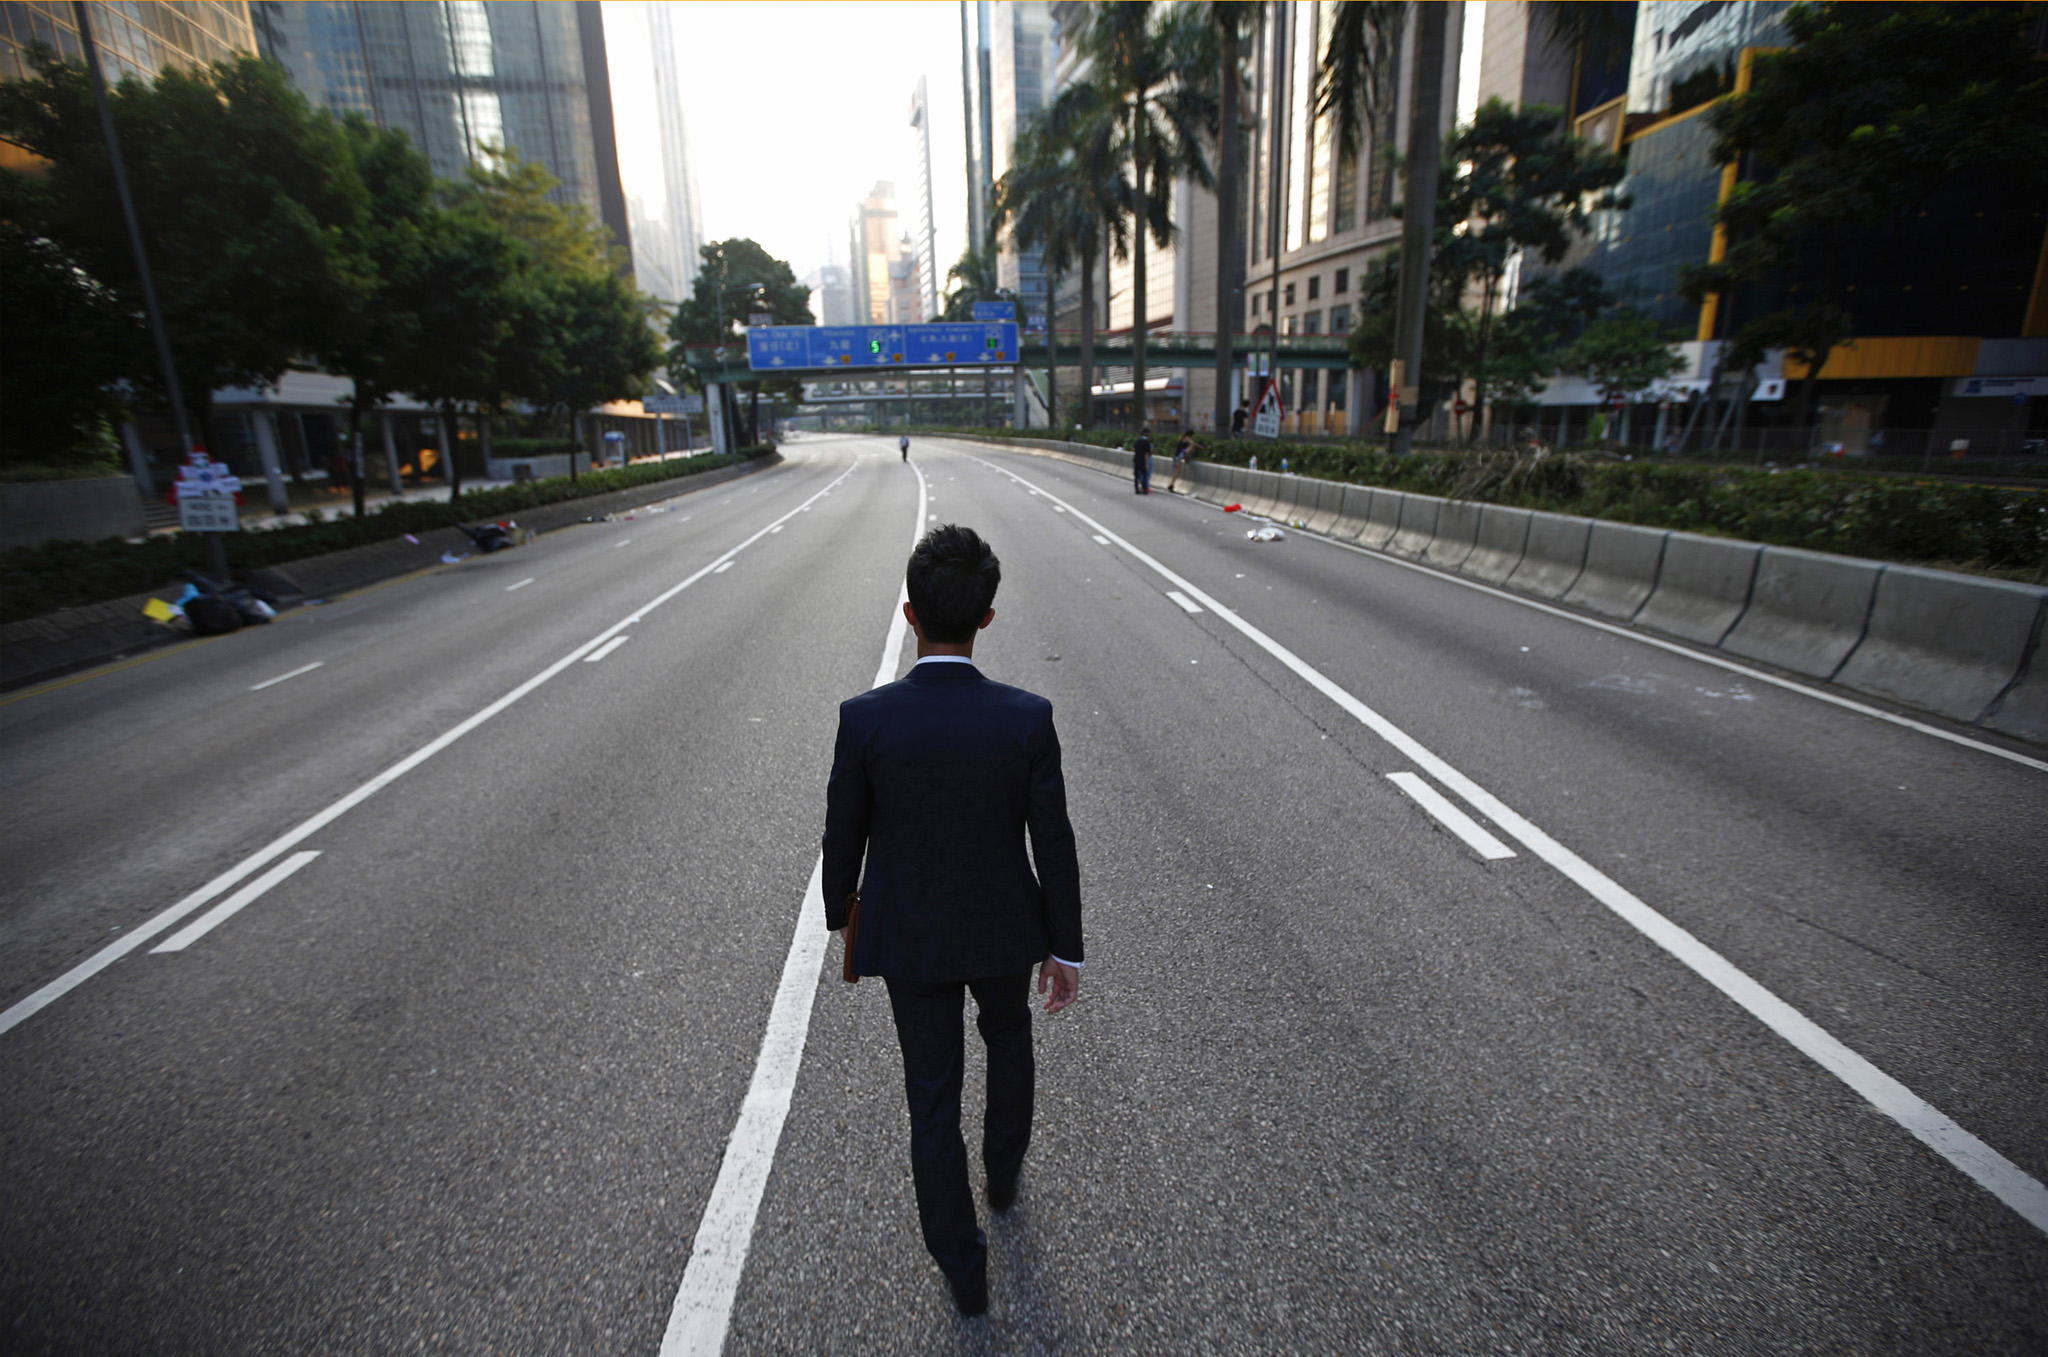 "REUTERS PICTURE HIGHLIGHT...ATTENTION EDITORS - REUTERS PICTURE HIGHLIGHT TRANSMITTED BY 0540 GMT ON SEPTEMBER 30, 2014    CB02  A man walks along an empty street near the central financial district in Hong Kong September 30, 2014. REUTERS/Carlos Barria    REUTERS NEWS PICTURES HAS NOW MADE IT EASIER TO FIND THE BEST PHOTOS FROM THE MOST IMPORTANT STORIES AND TOP STANDALONES EACH DAY. Search for ""TPX"" in the IPTC Supplemental Category field or ""IMAGES OF THE DAY"" in the Caption field and you will find a selection of 80-100 of our daily Top Pictures.    REUTERS NEWS PICTURES.     TEMPLATE OUT"